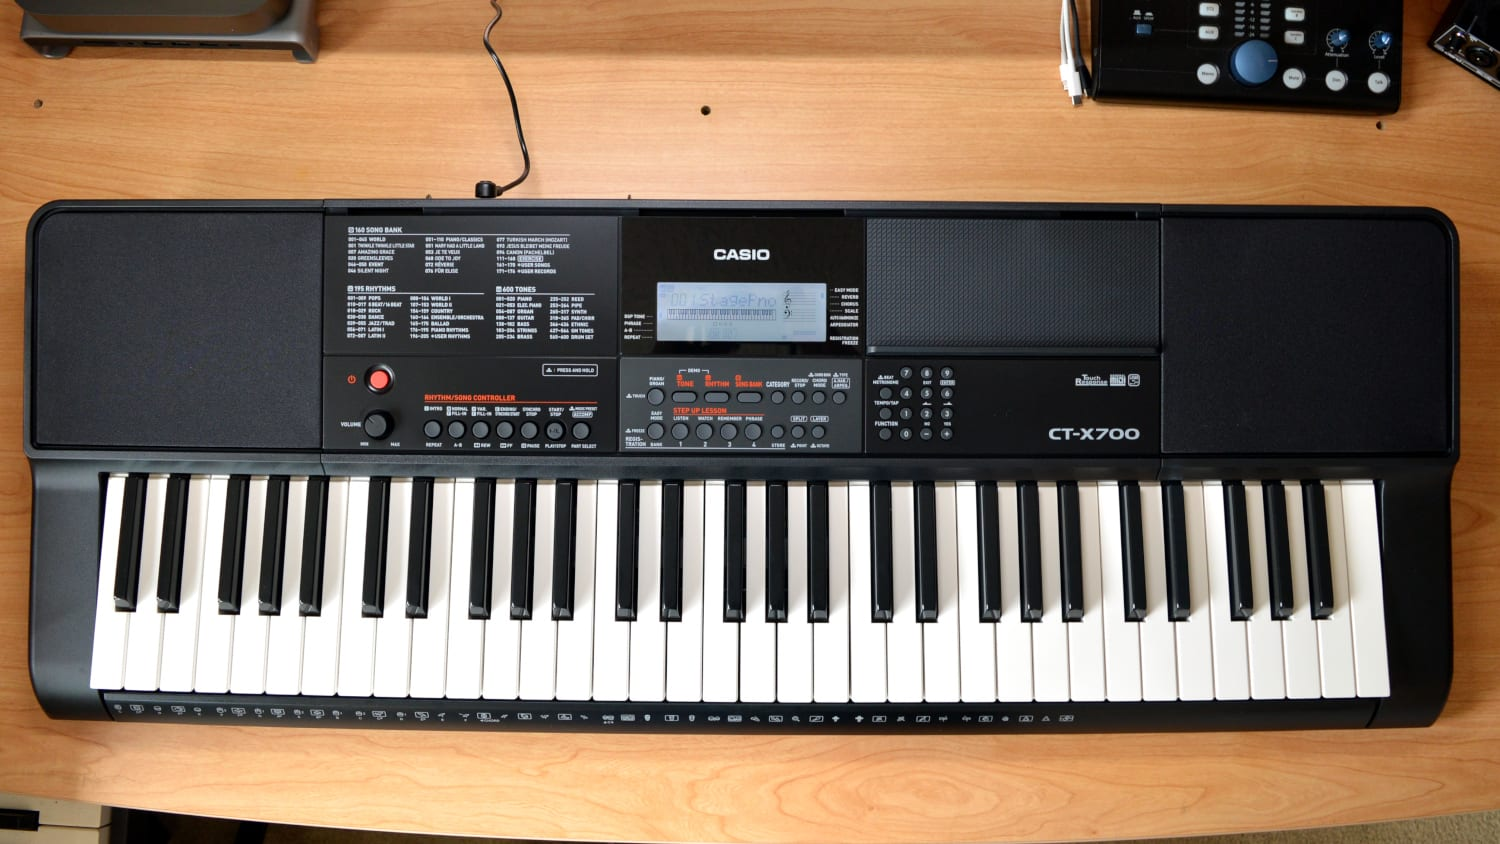 Casio CT-X700 Design